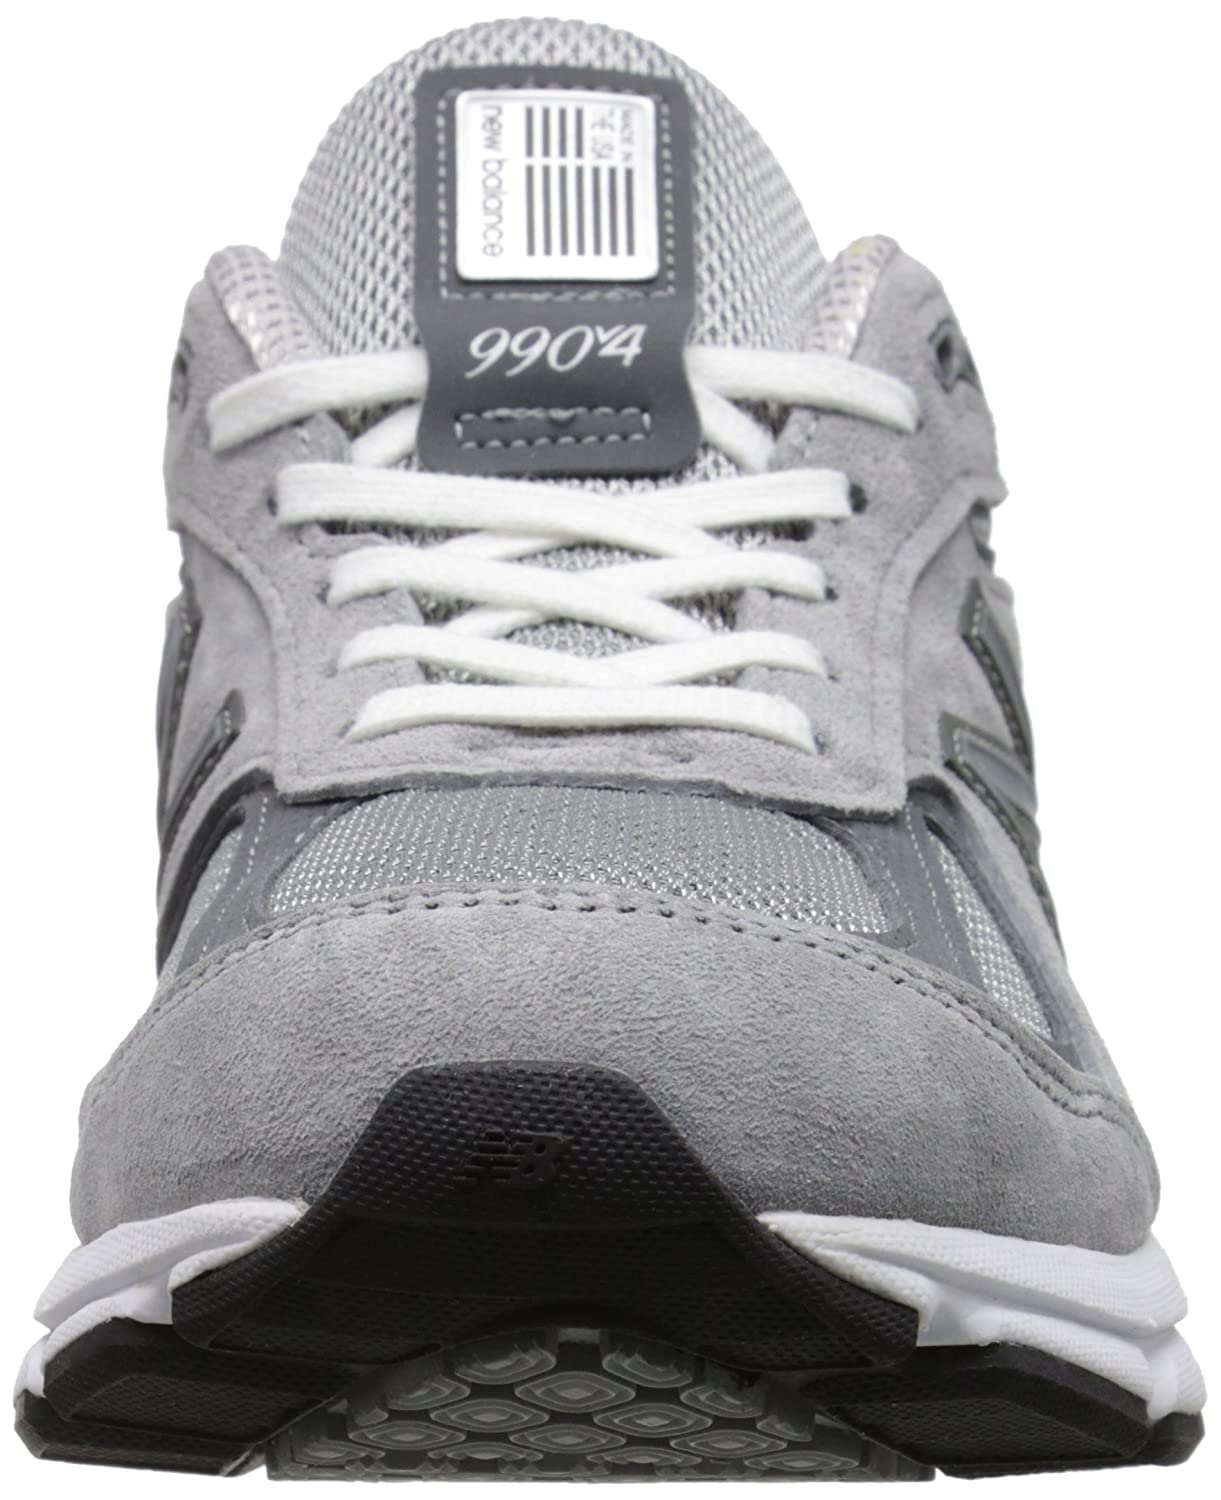 New-Balance-990-990v4-Classicc-Retro-Fashion-Sneaker-Made-in-USA thumbnail 64